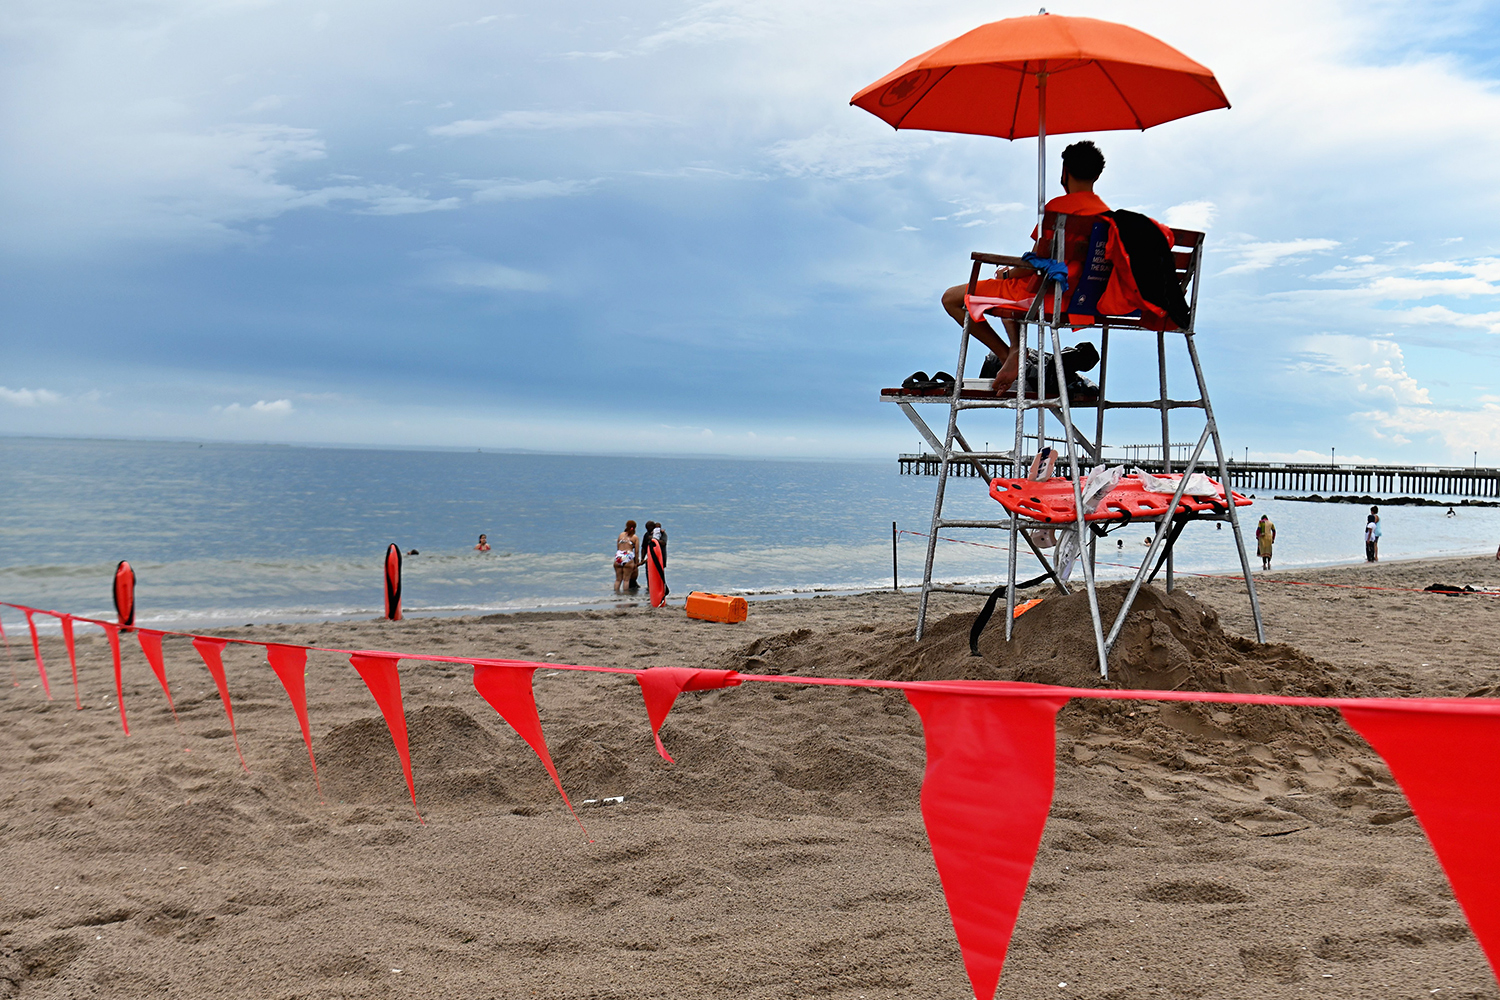 16-year-old Cape May lifeguard Norman Inferrera dies from injuries suffered in on-duty boating accident